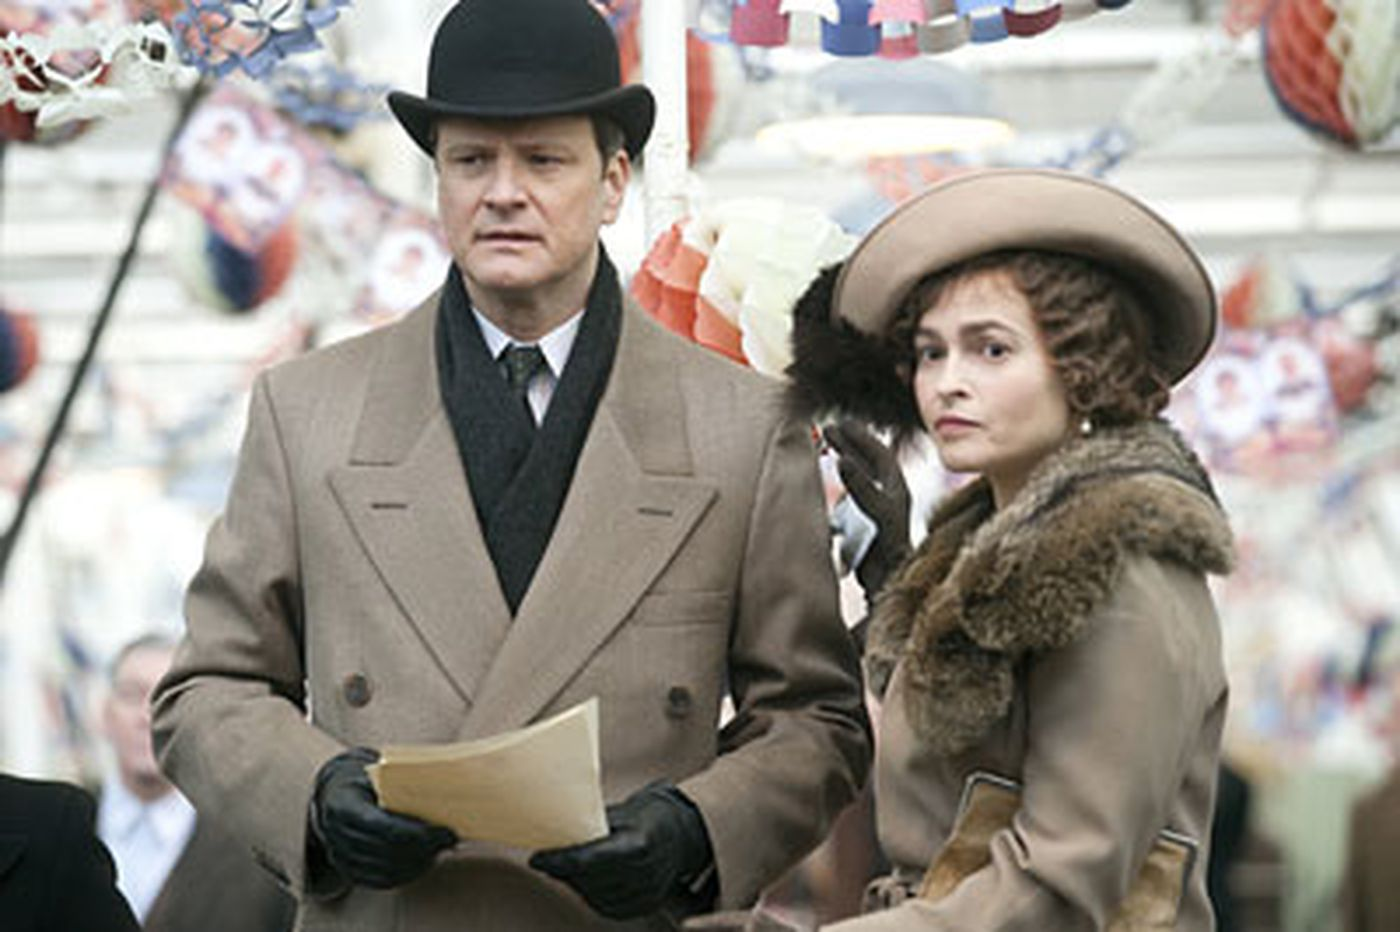 'The King's Speech': Trouble with the King and his English